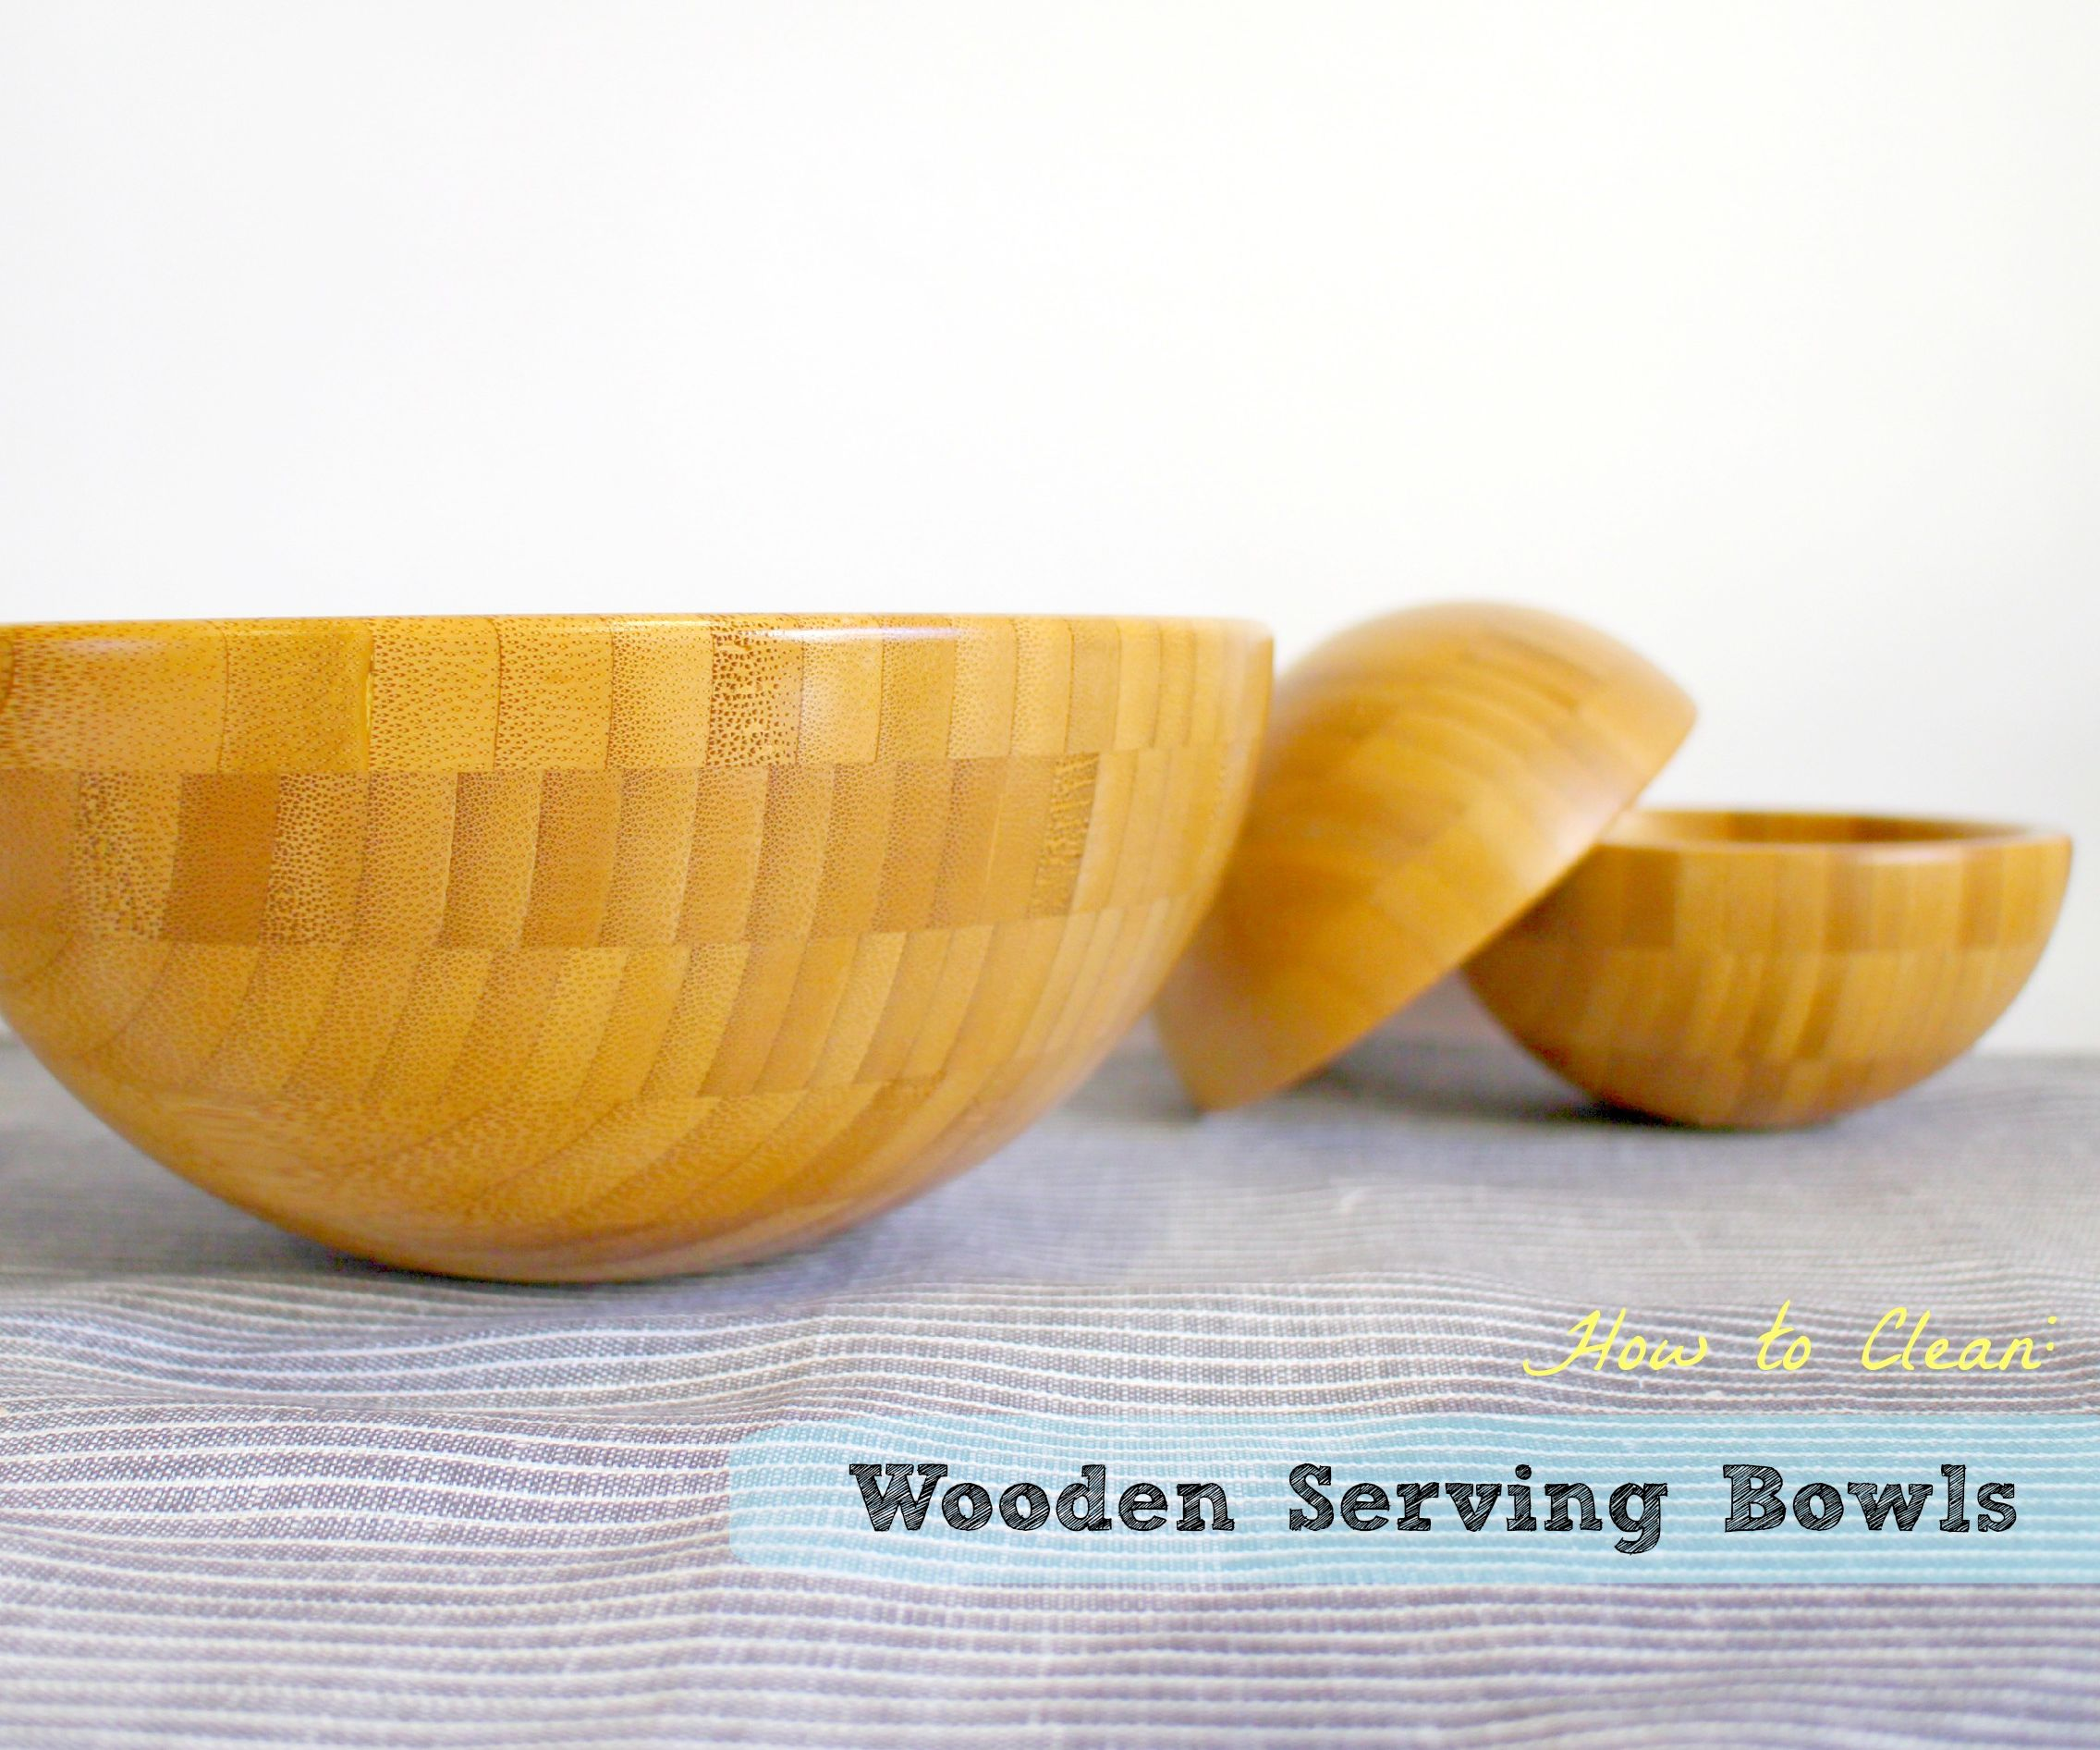 How to Clean Wooden Serving Bowls